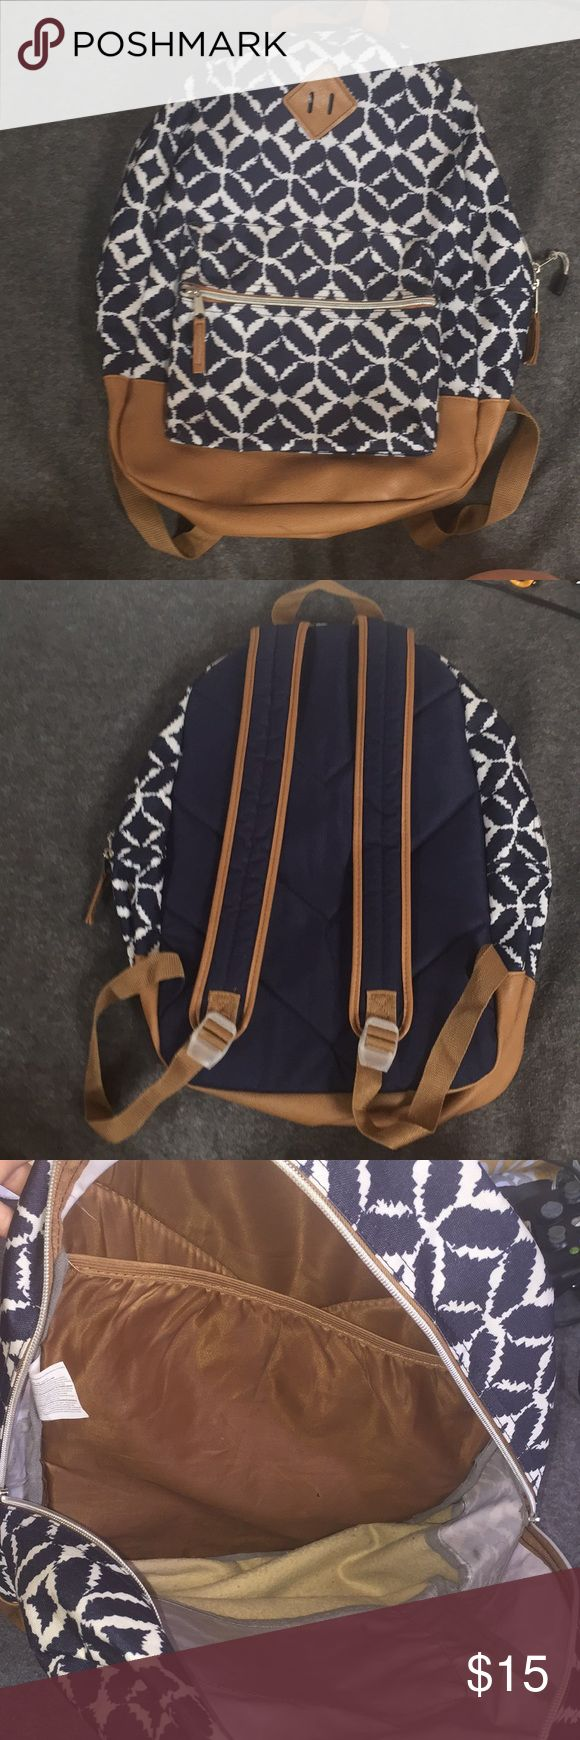 Backpack Blue and White backpack with leather detailing. Has a laptop slip inside the main pocket as well as a small pocket on the front. There's some wear on the straps (pictured at the end). Overall in great condition, just too small for all of my schoolbooks and binders. Bags Backpacks